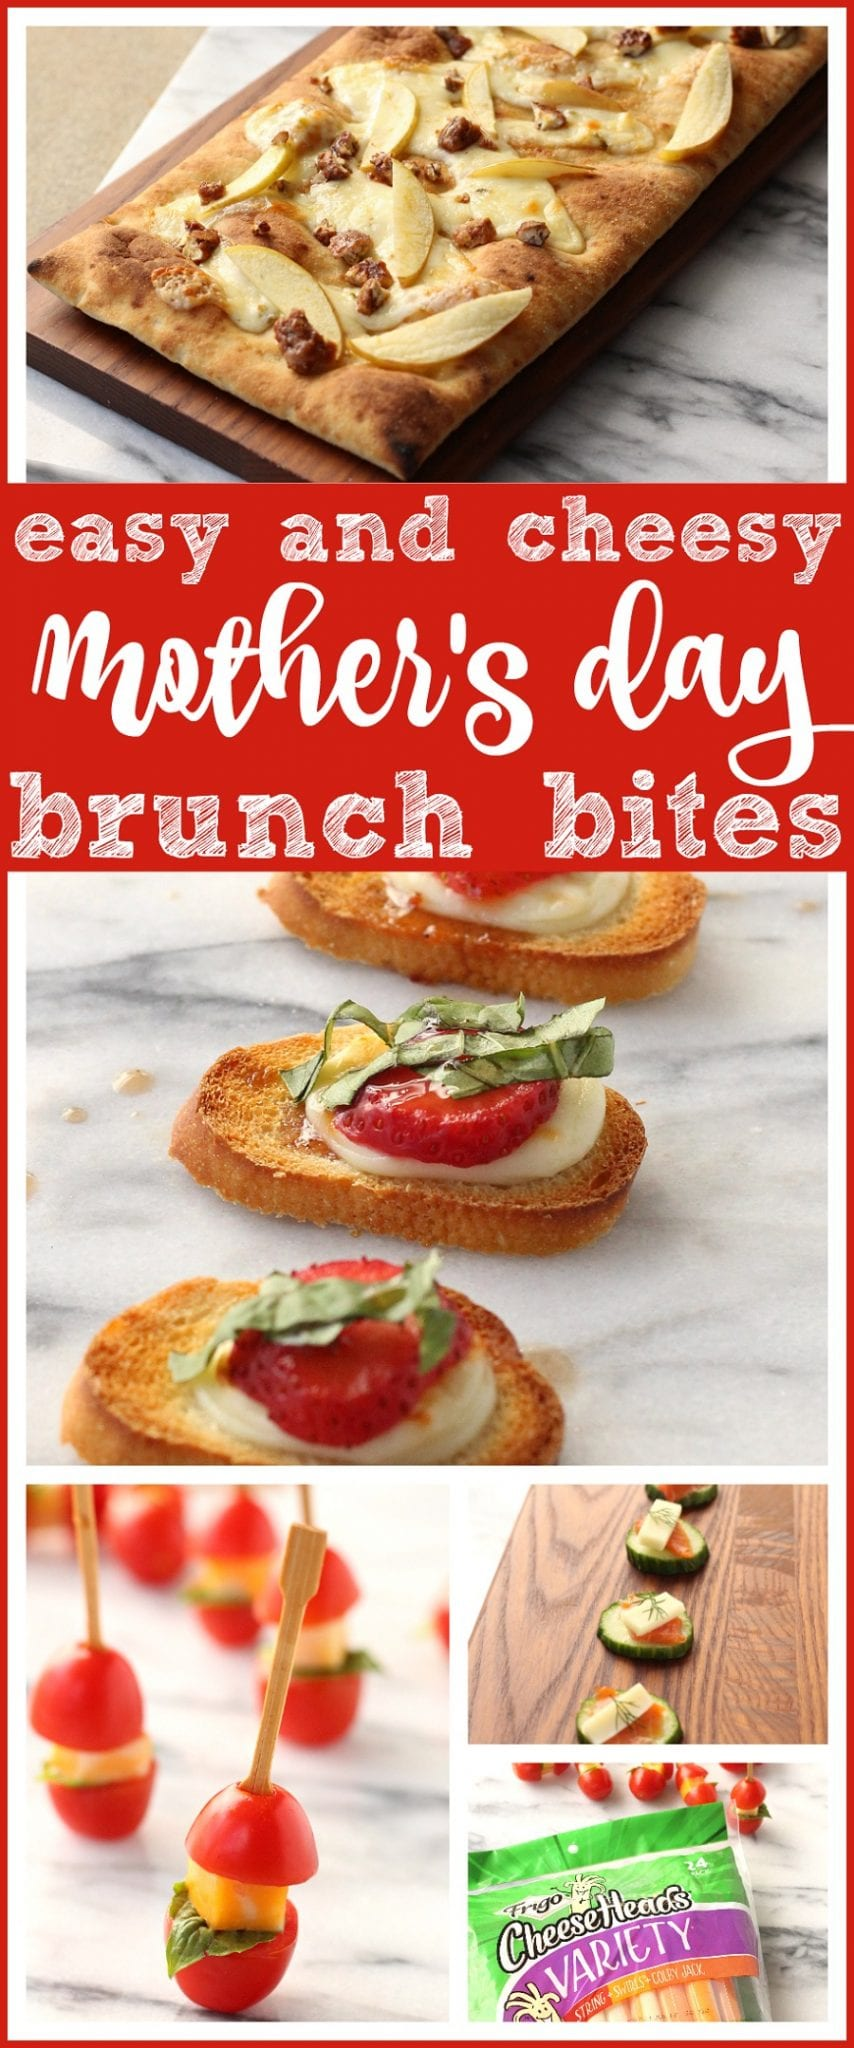 Easy Mother's day brunch bites